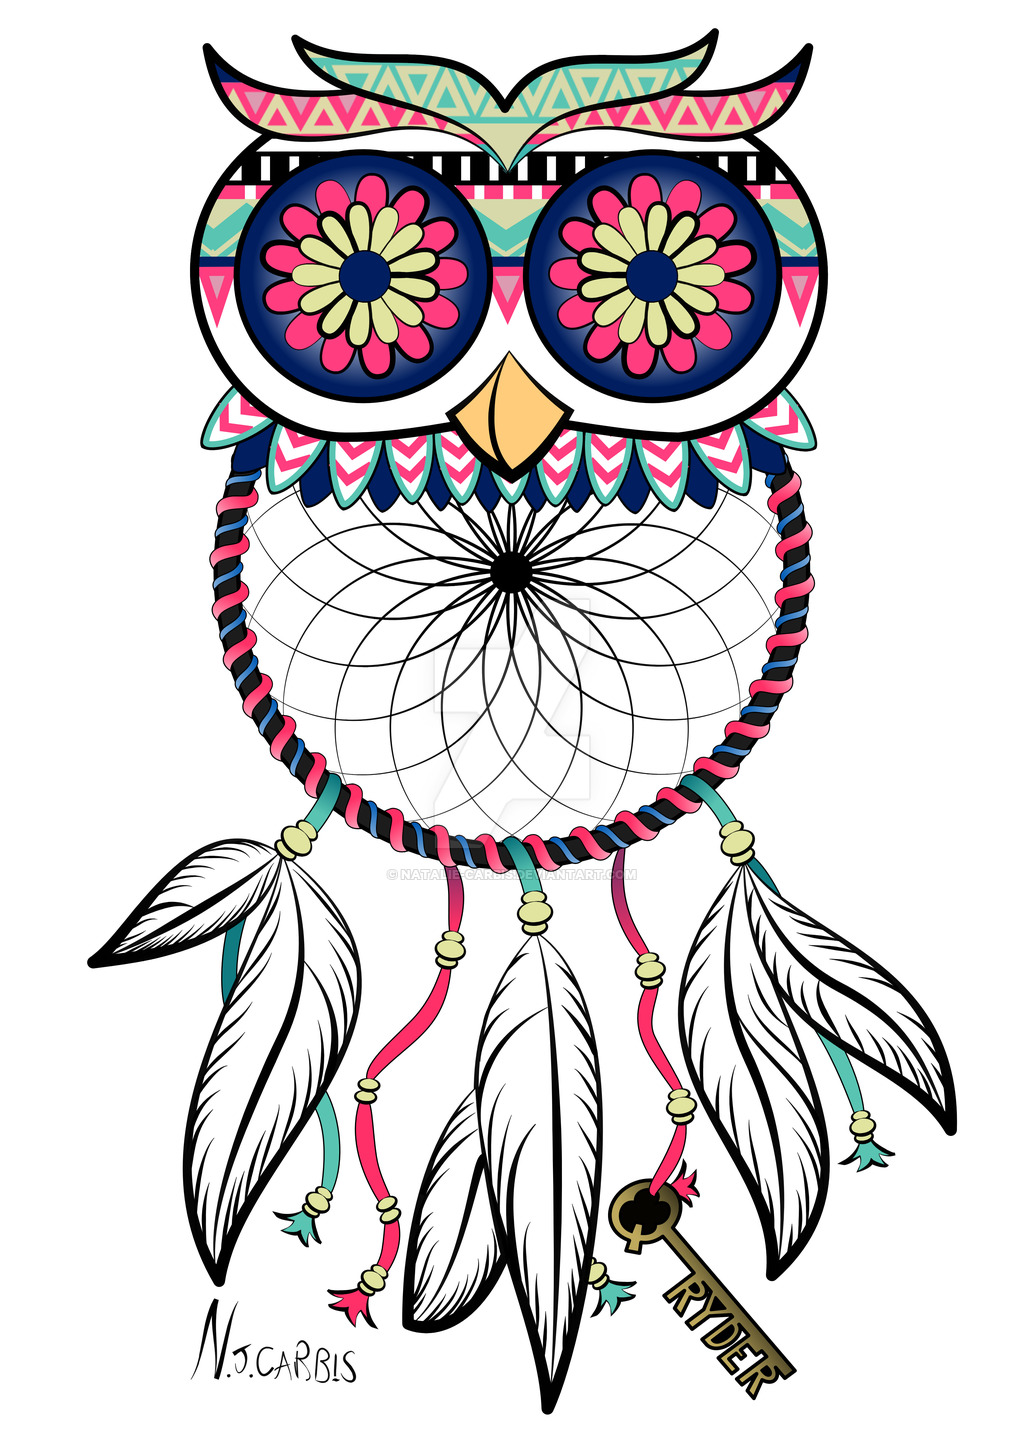 Dreamcatcher clipart jpeg. Owl dream catcher drawing